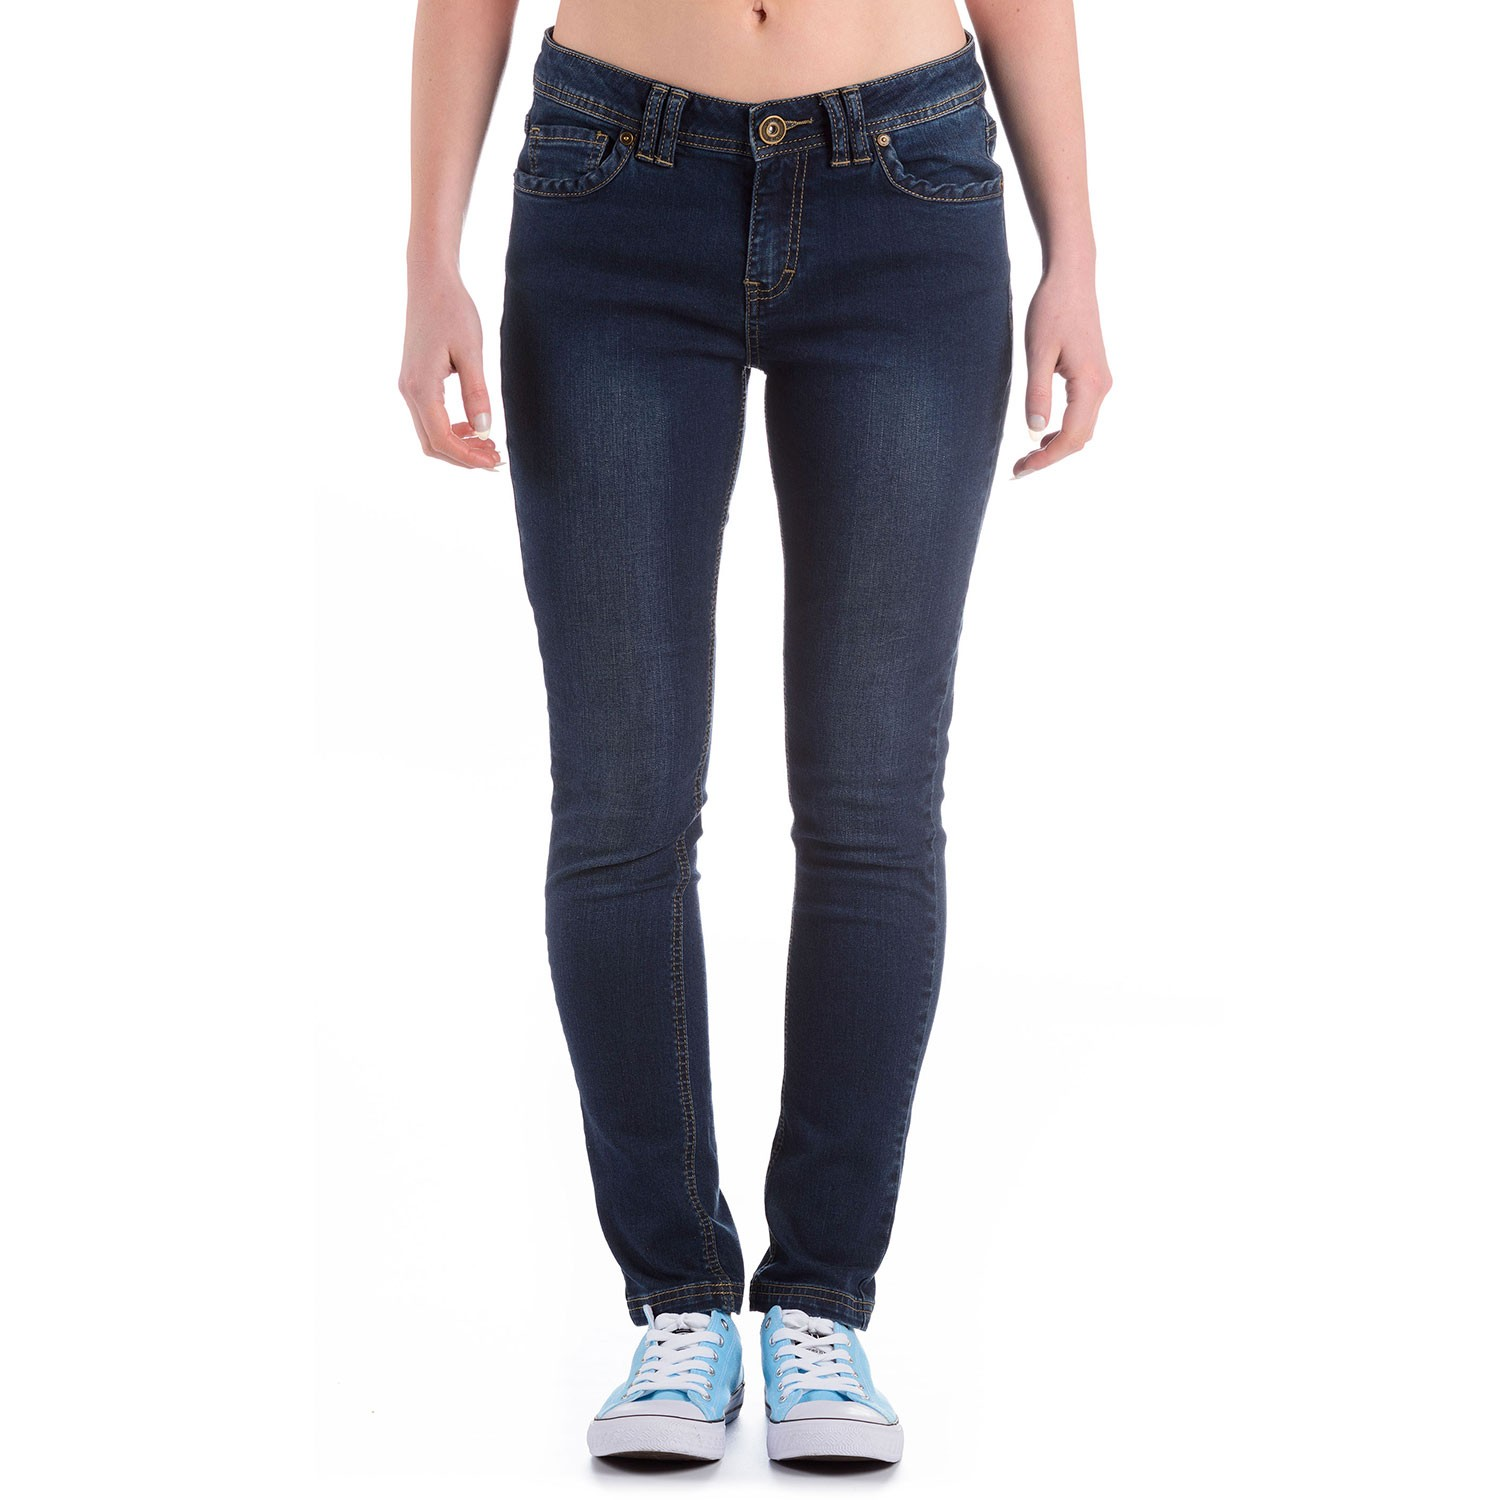 Womens Dark Blue Denim Jeans Meteor - Free Delivery Over £20 ...